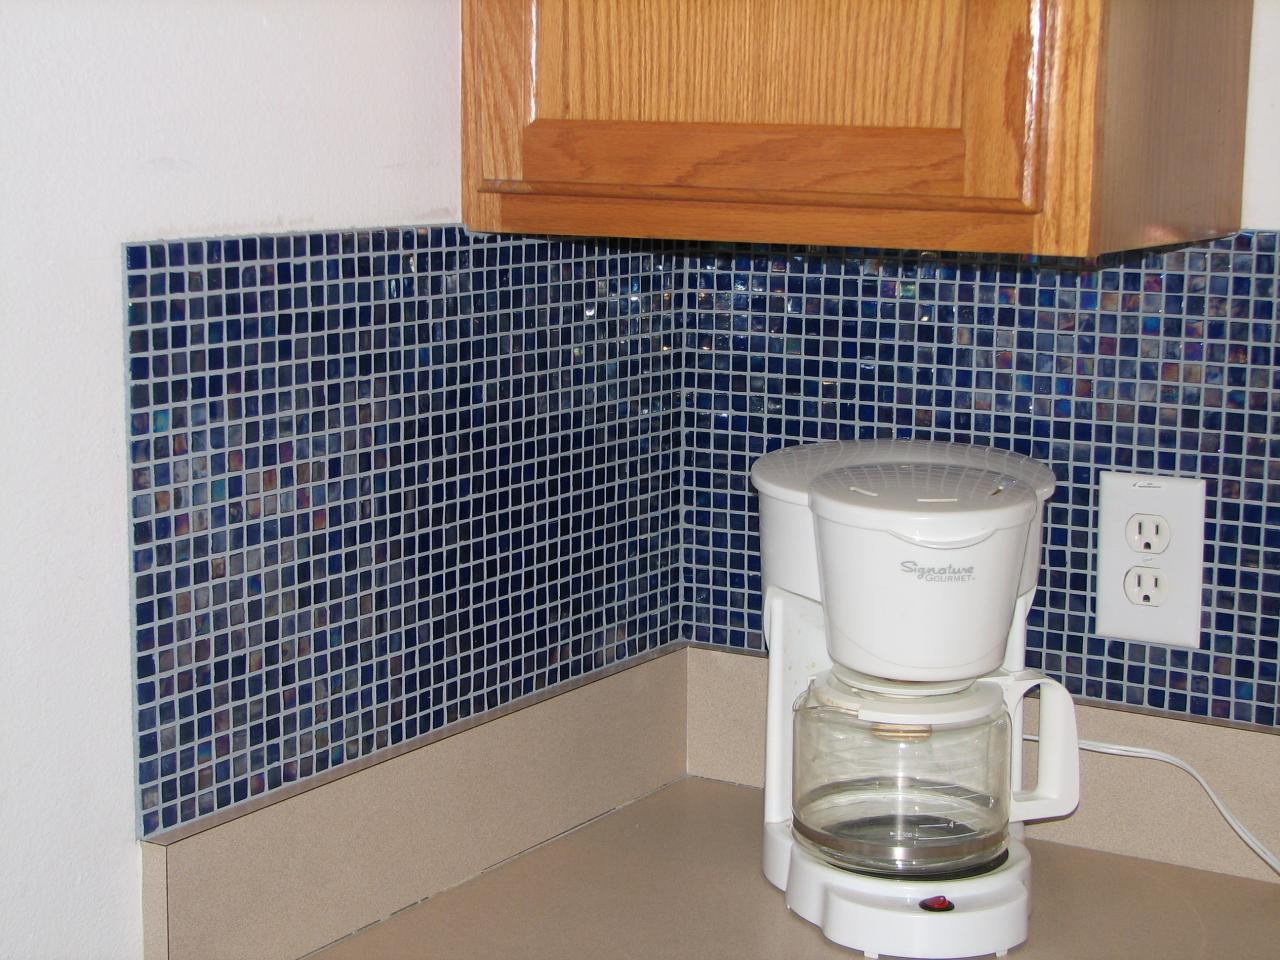 Details Carpentry and Remodeling LLC - tile installations